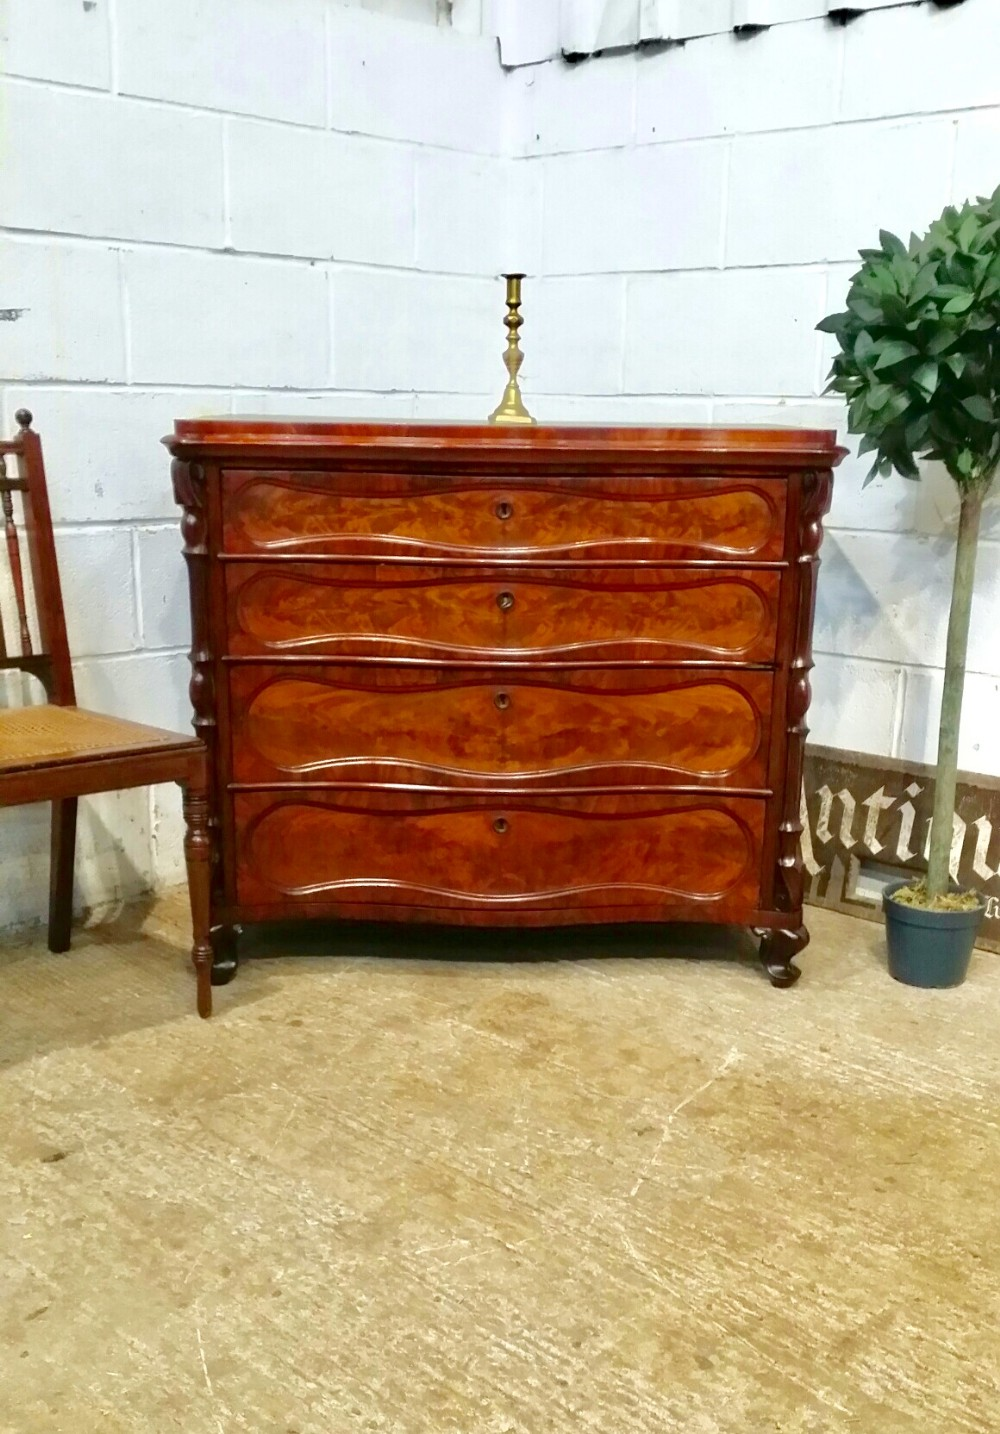 antique 19th century biedermeier serpentine front mahogany chest of drawers c1890